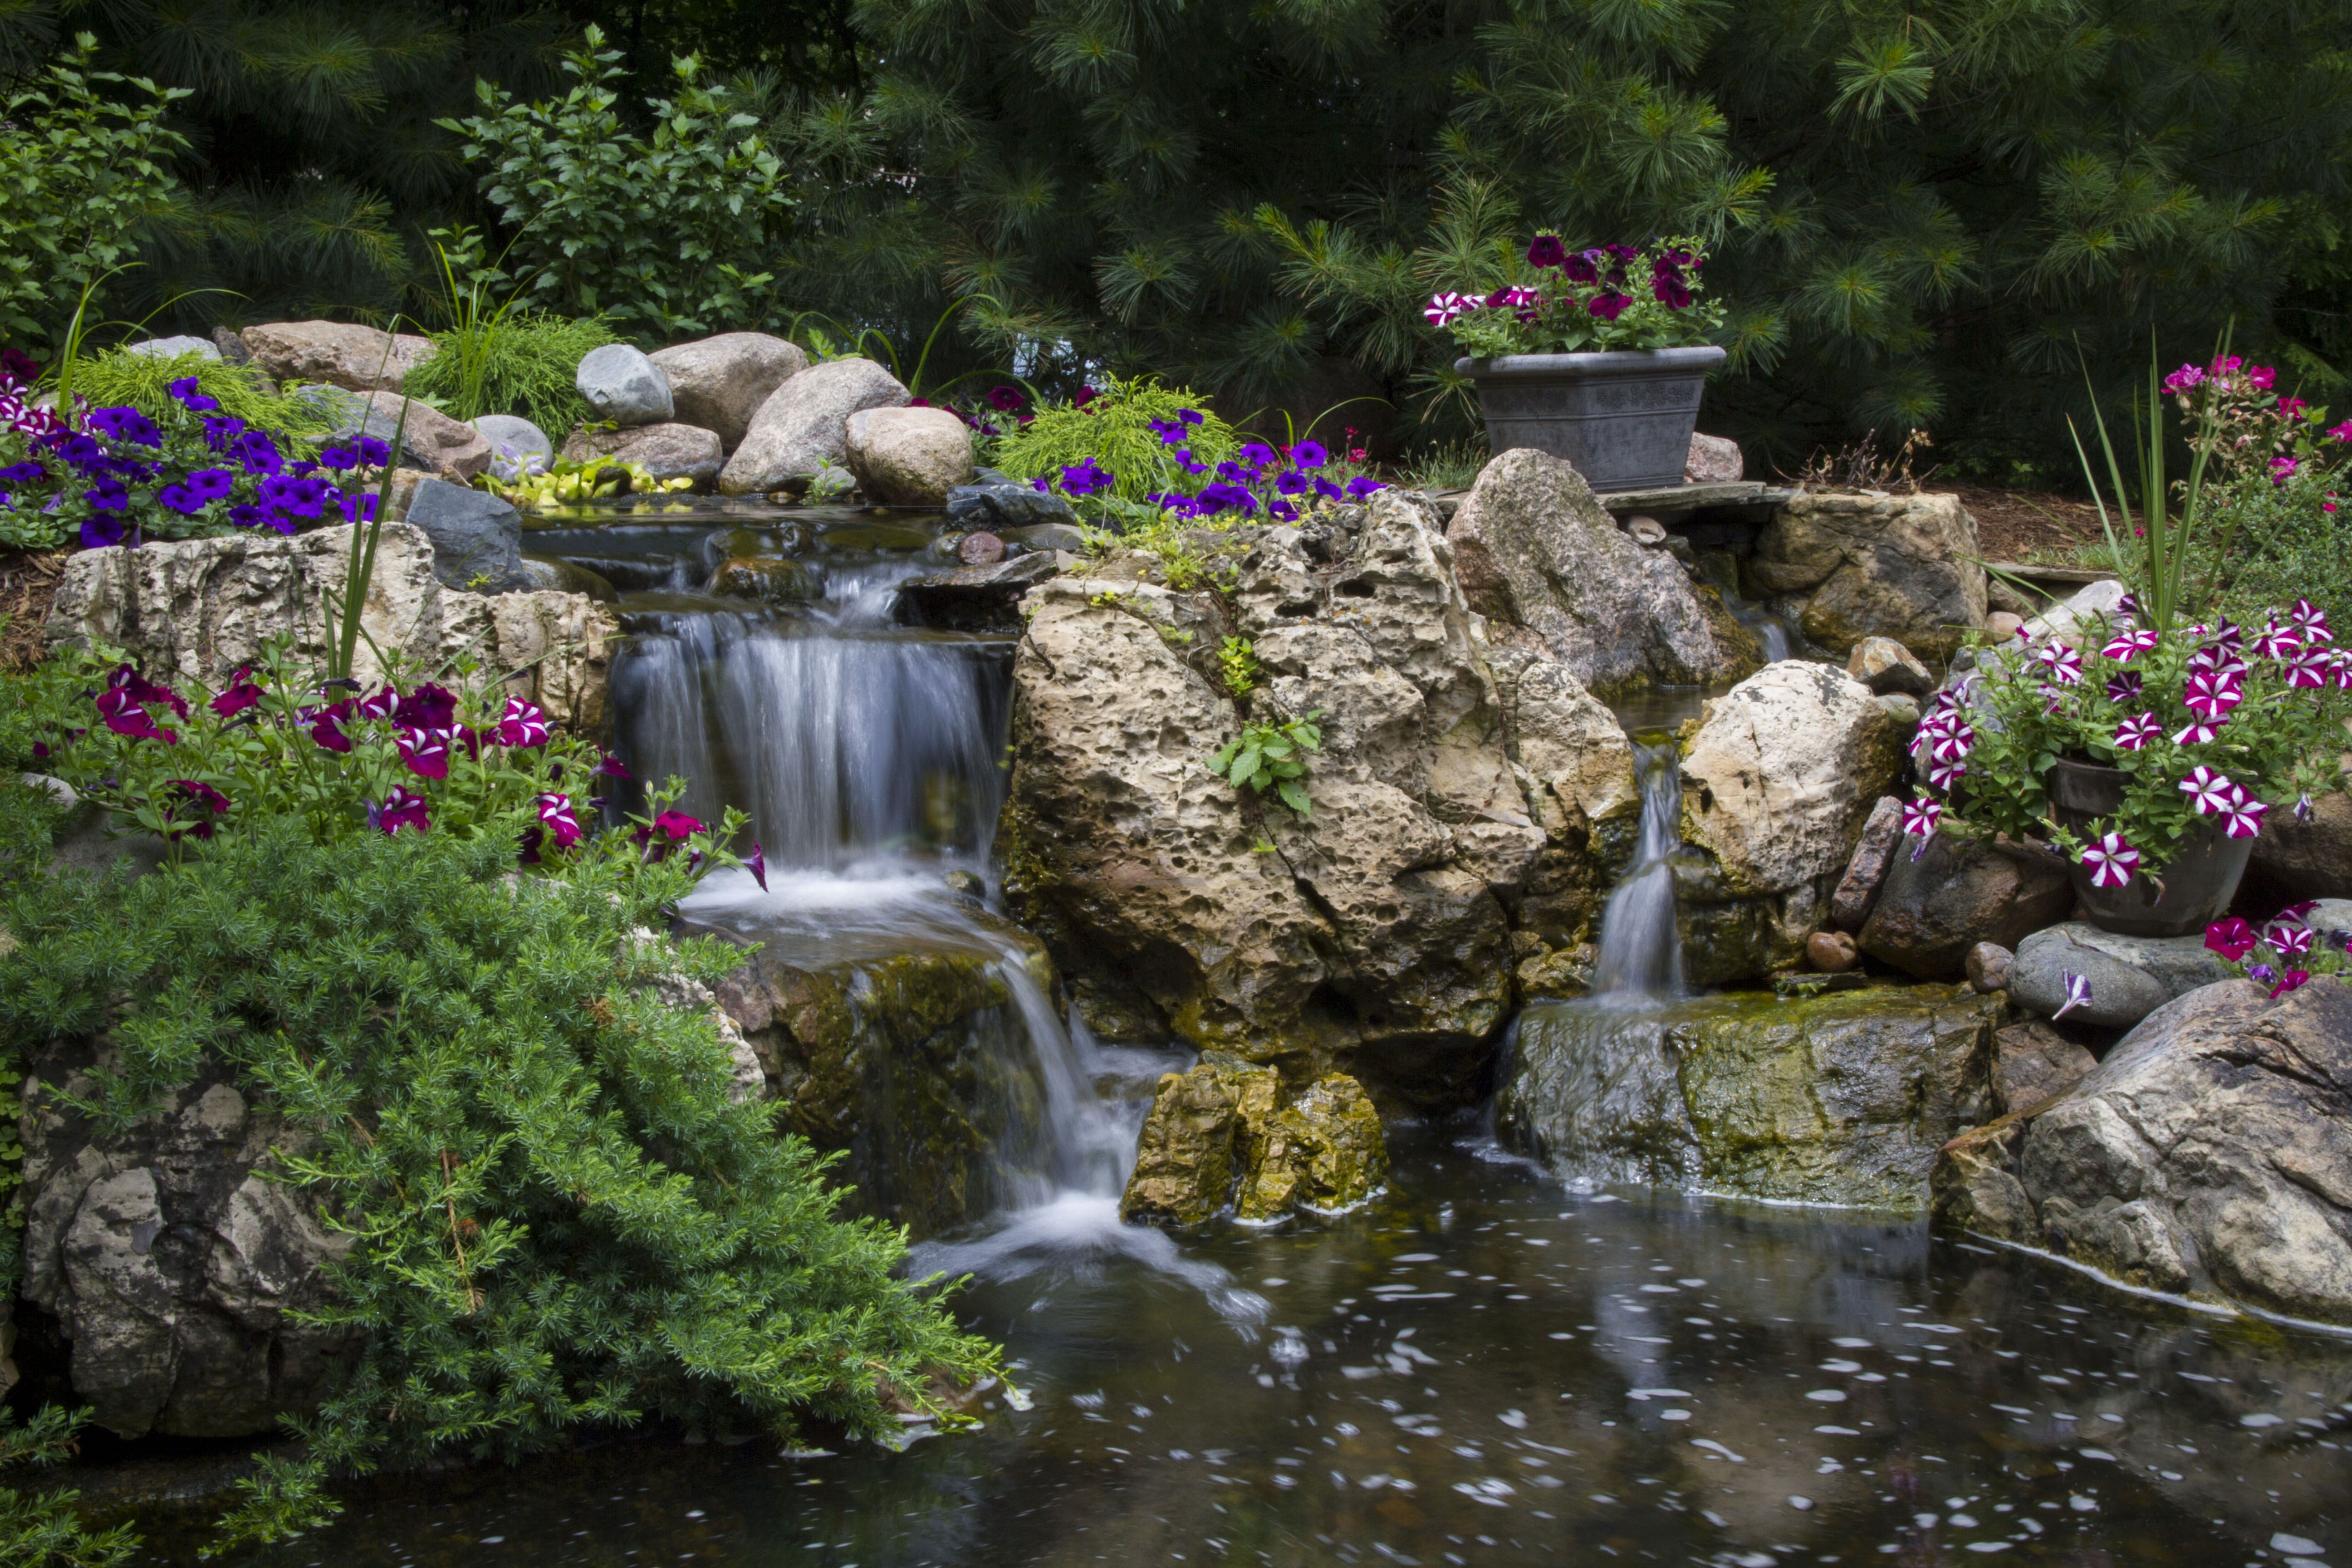 Wonderful Aquascape Is The Leading Manufacturer Of Water Gardens, Water Features, And  Products For Backyard Ponds. Build And Maintain Your Pond With Aquascape!